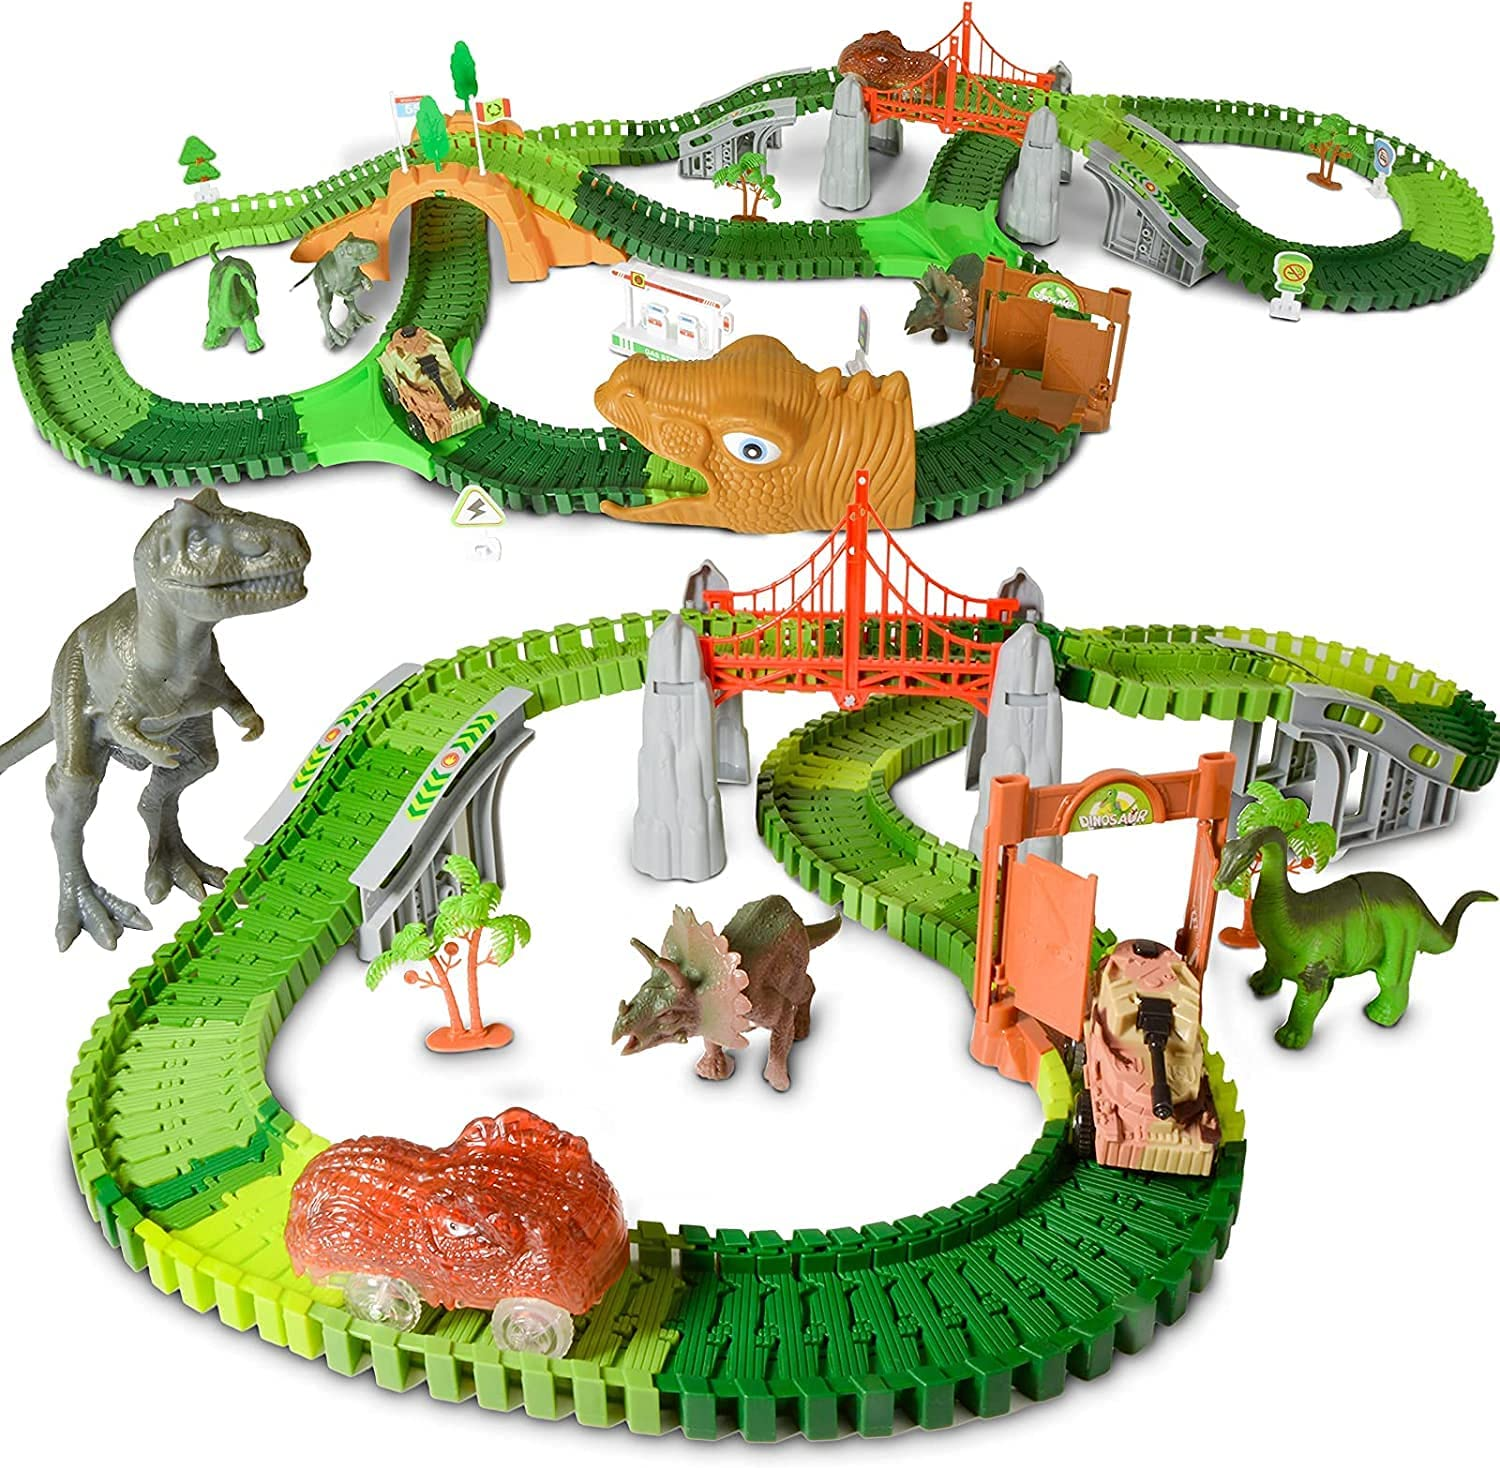 HOMETTER Dinosaur Race Track Car Toy Set for 3 4 5 6 7 8+ Years Old Boys and...